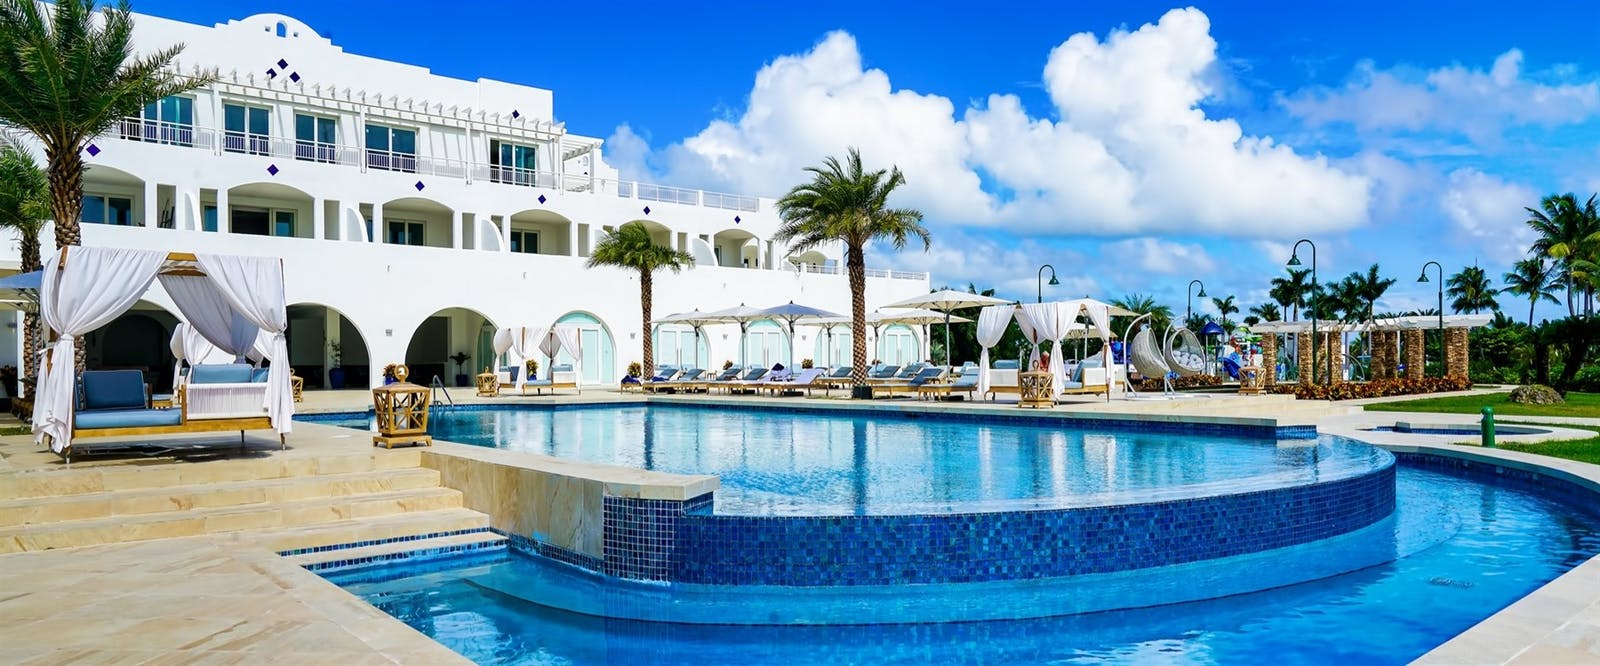 Swimming Pool at CuisinArt Golf Resort & Spa, Anguilla